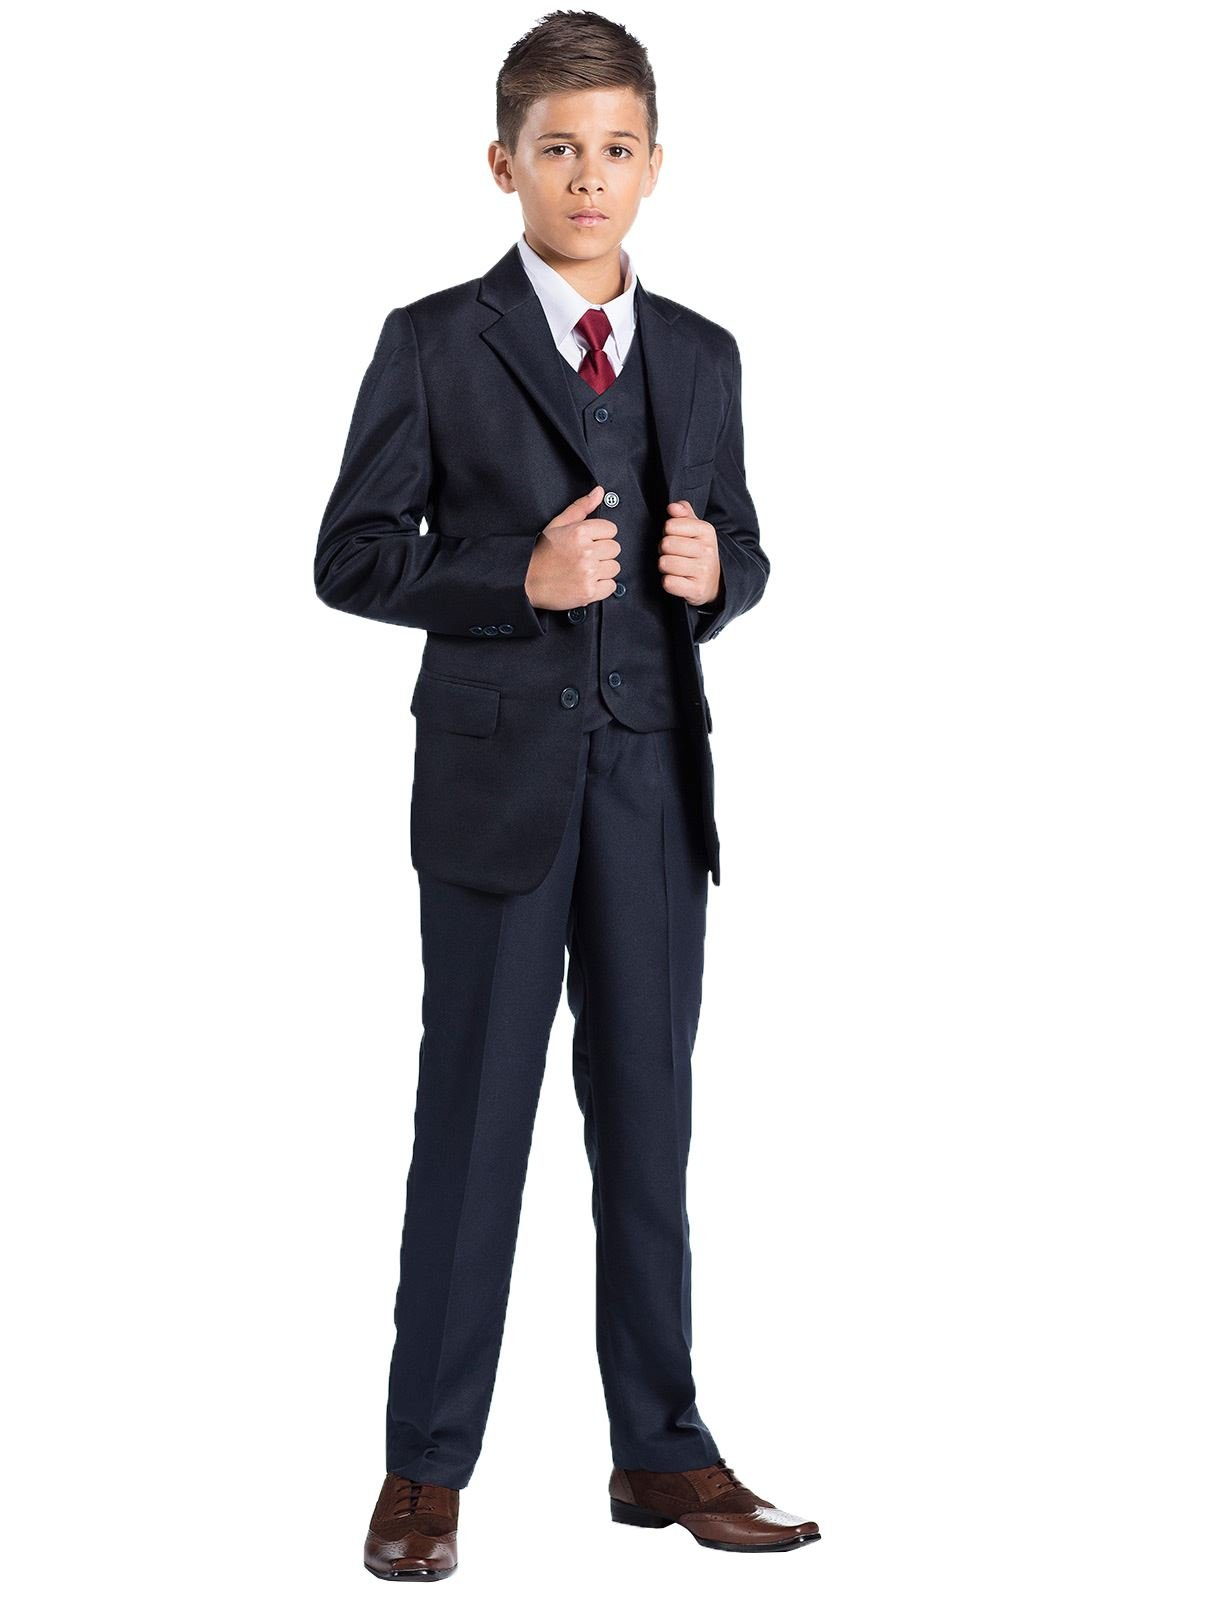 Shiny Penny, Boys Formal 5 Piece Suit Set with Shirt & Vest, Boys Navy Suit, 12